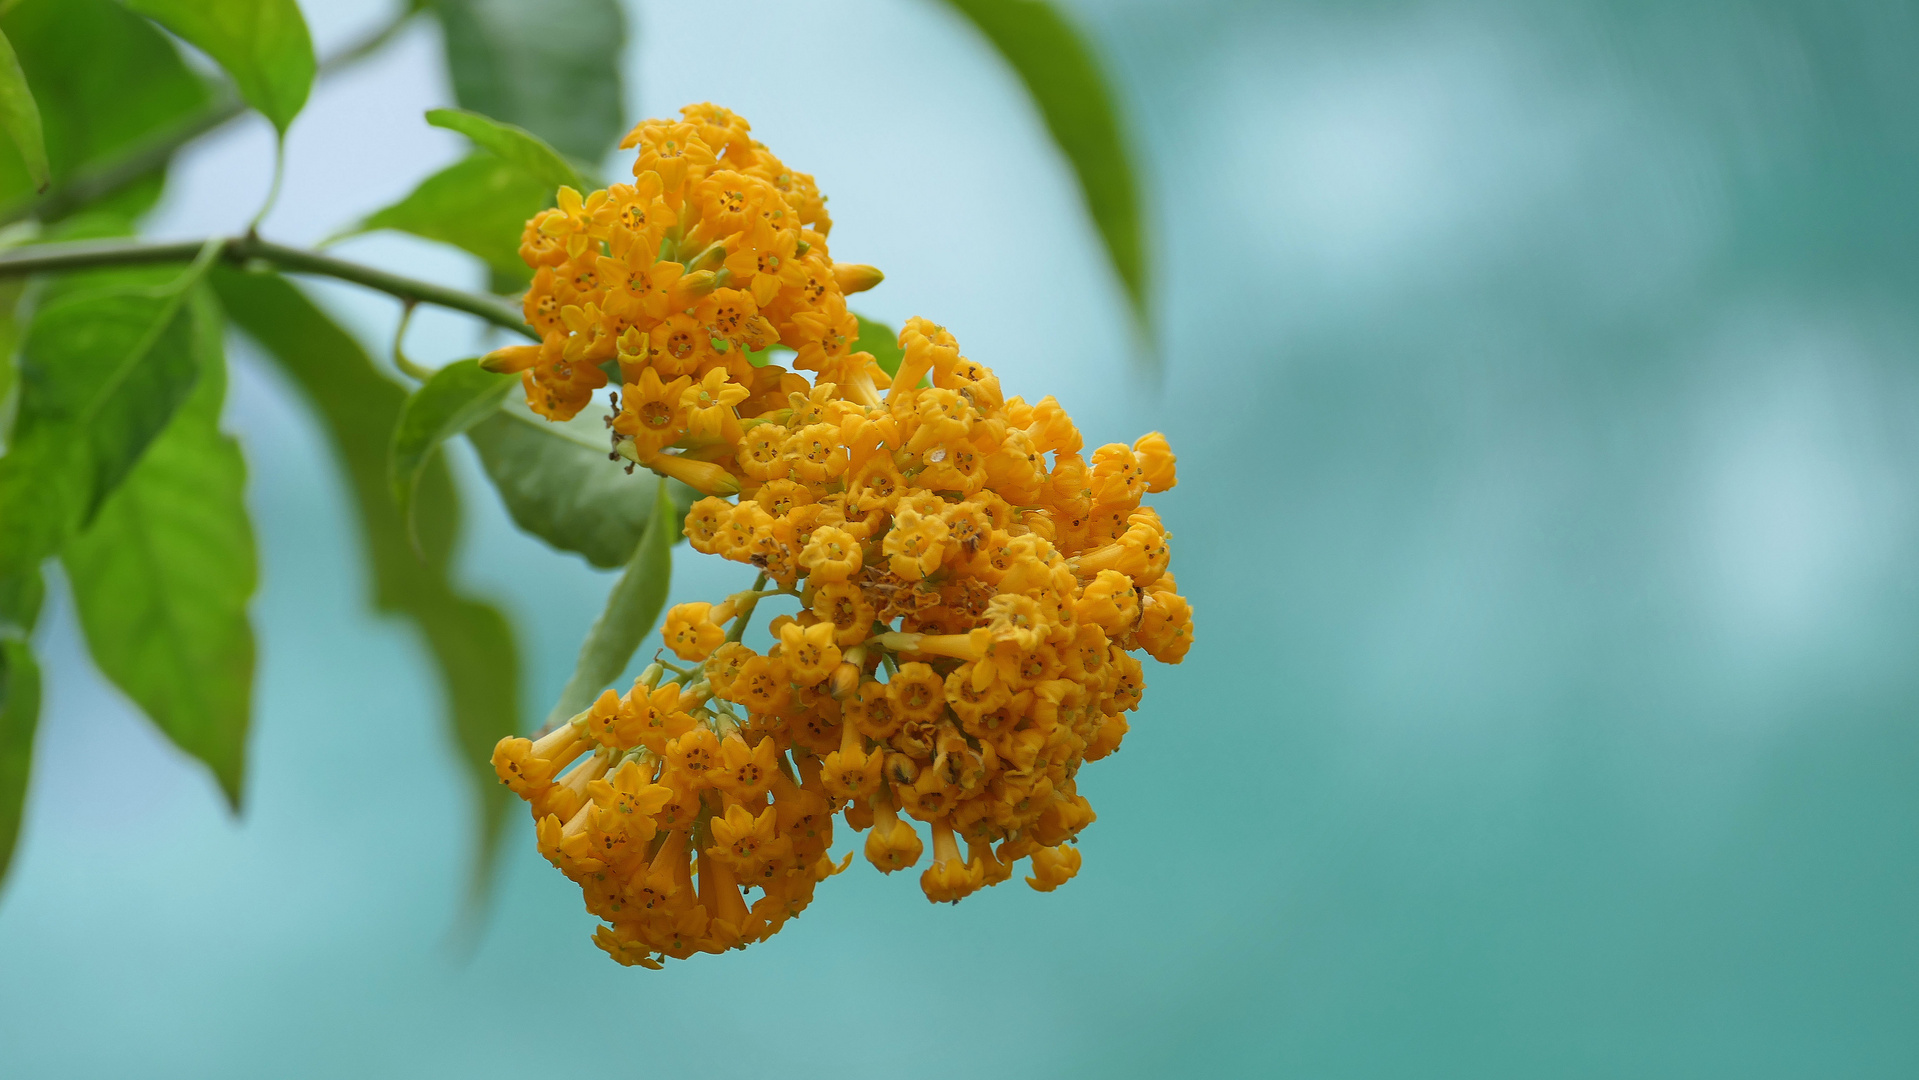 ... twig with small yellow flowers